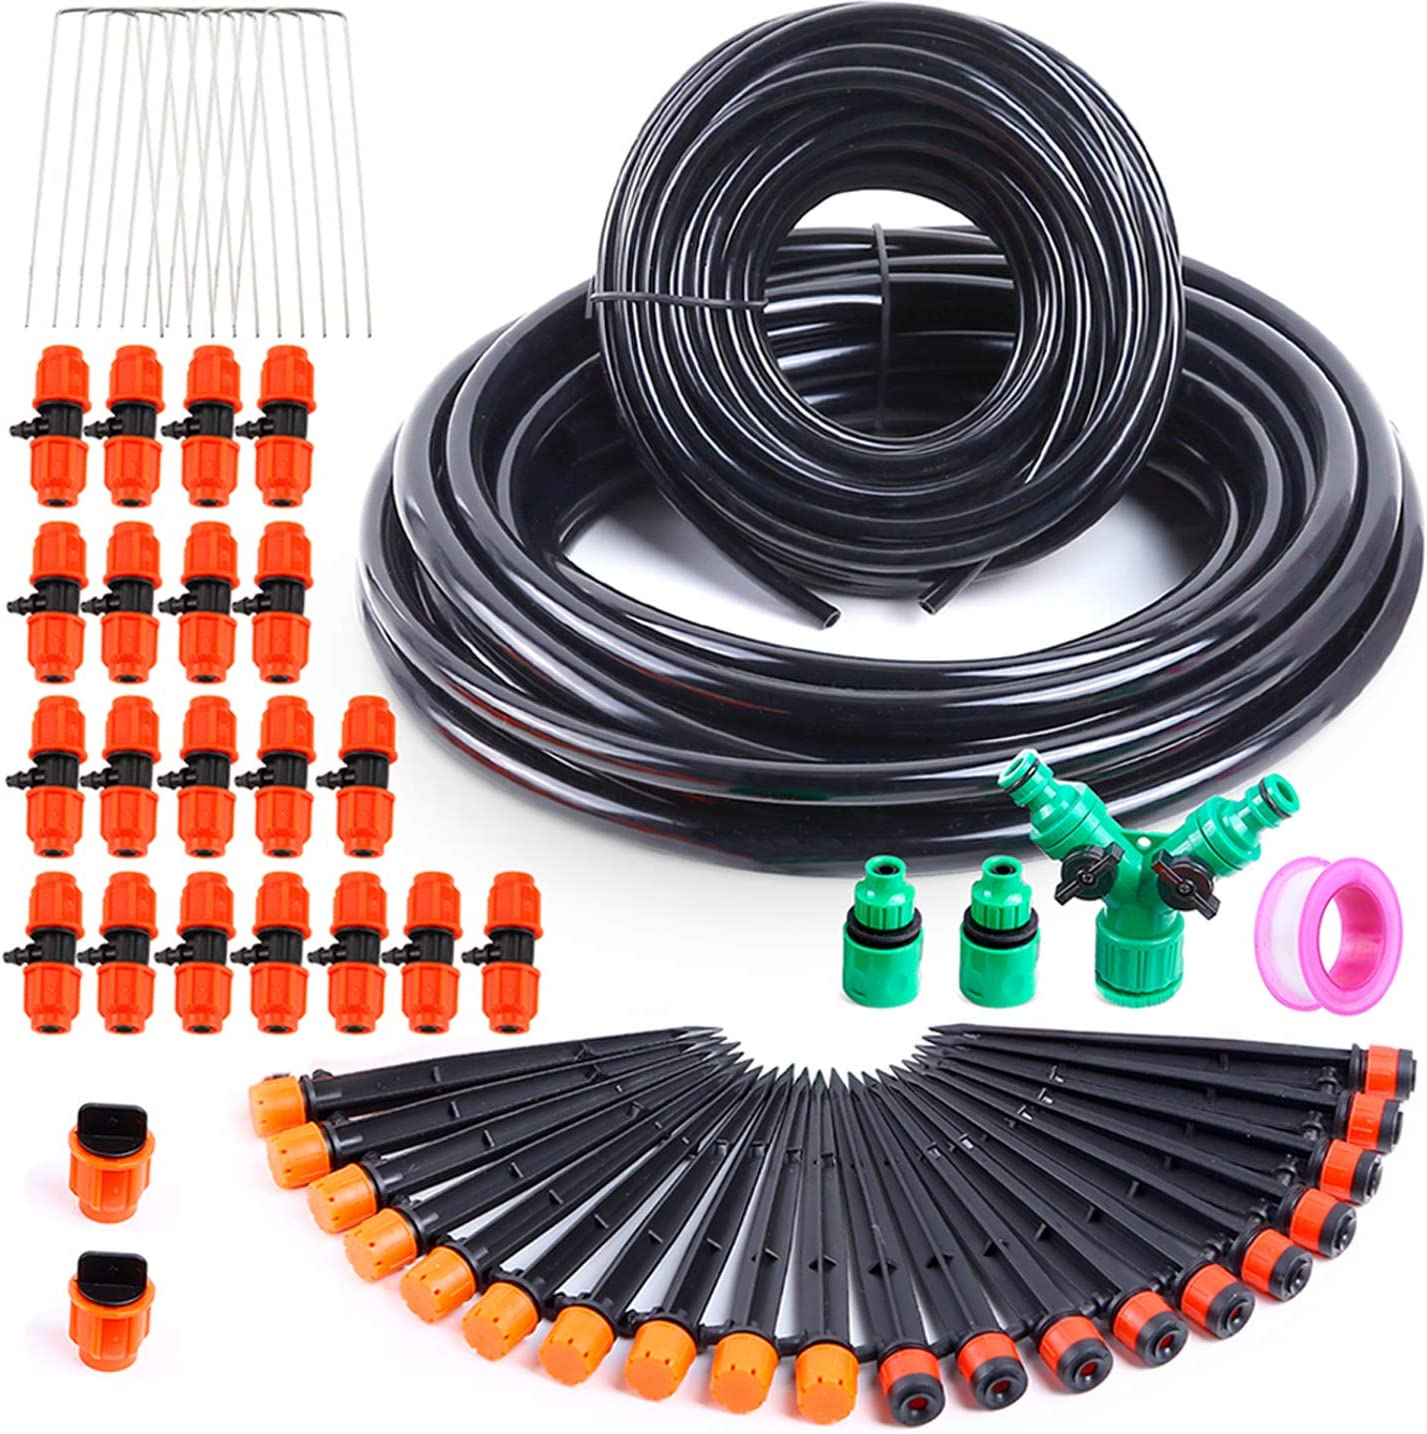 "Ohuhu Drip Irrigation Kit, Micro Plant Watering Irrigation System, Durable 2/5"" Main Tubing & 1/4"" Branch Tubing Hose 33 FT Each, 20 Drippers Emitters & 2-Way Valve, Automatic Irrigation Equipment Set"